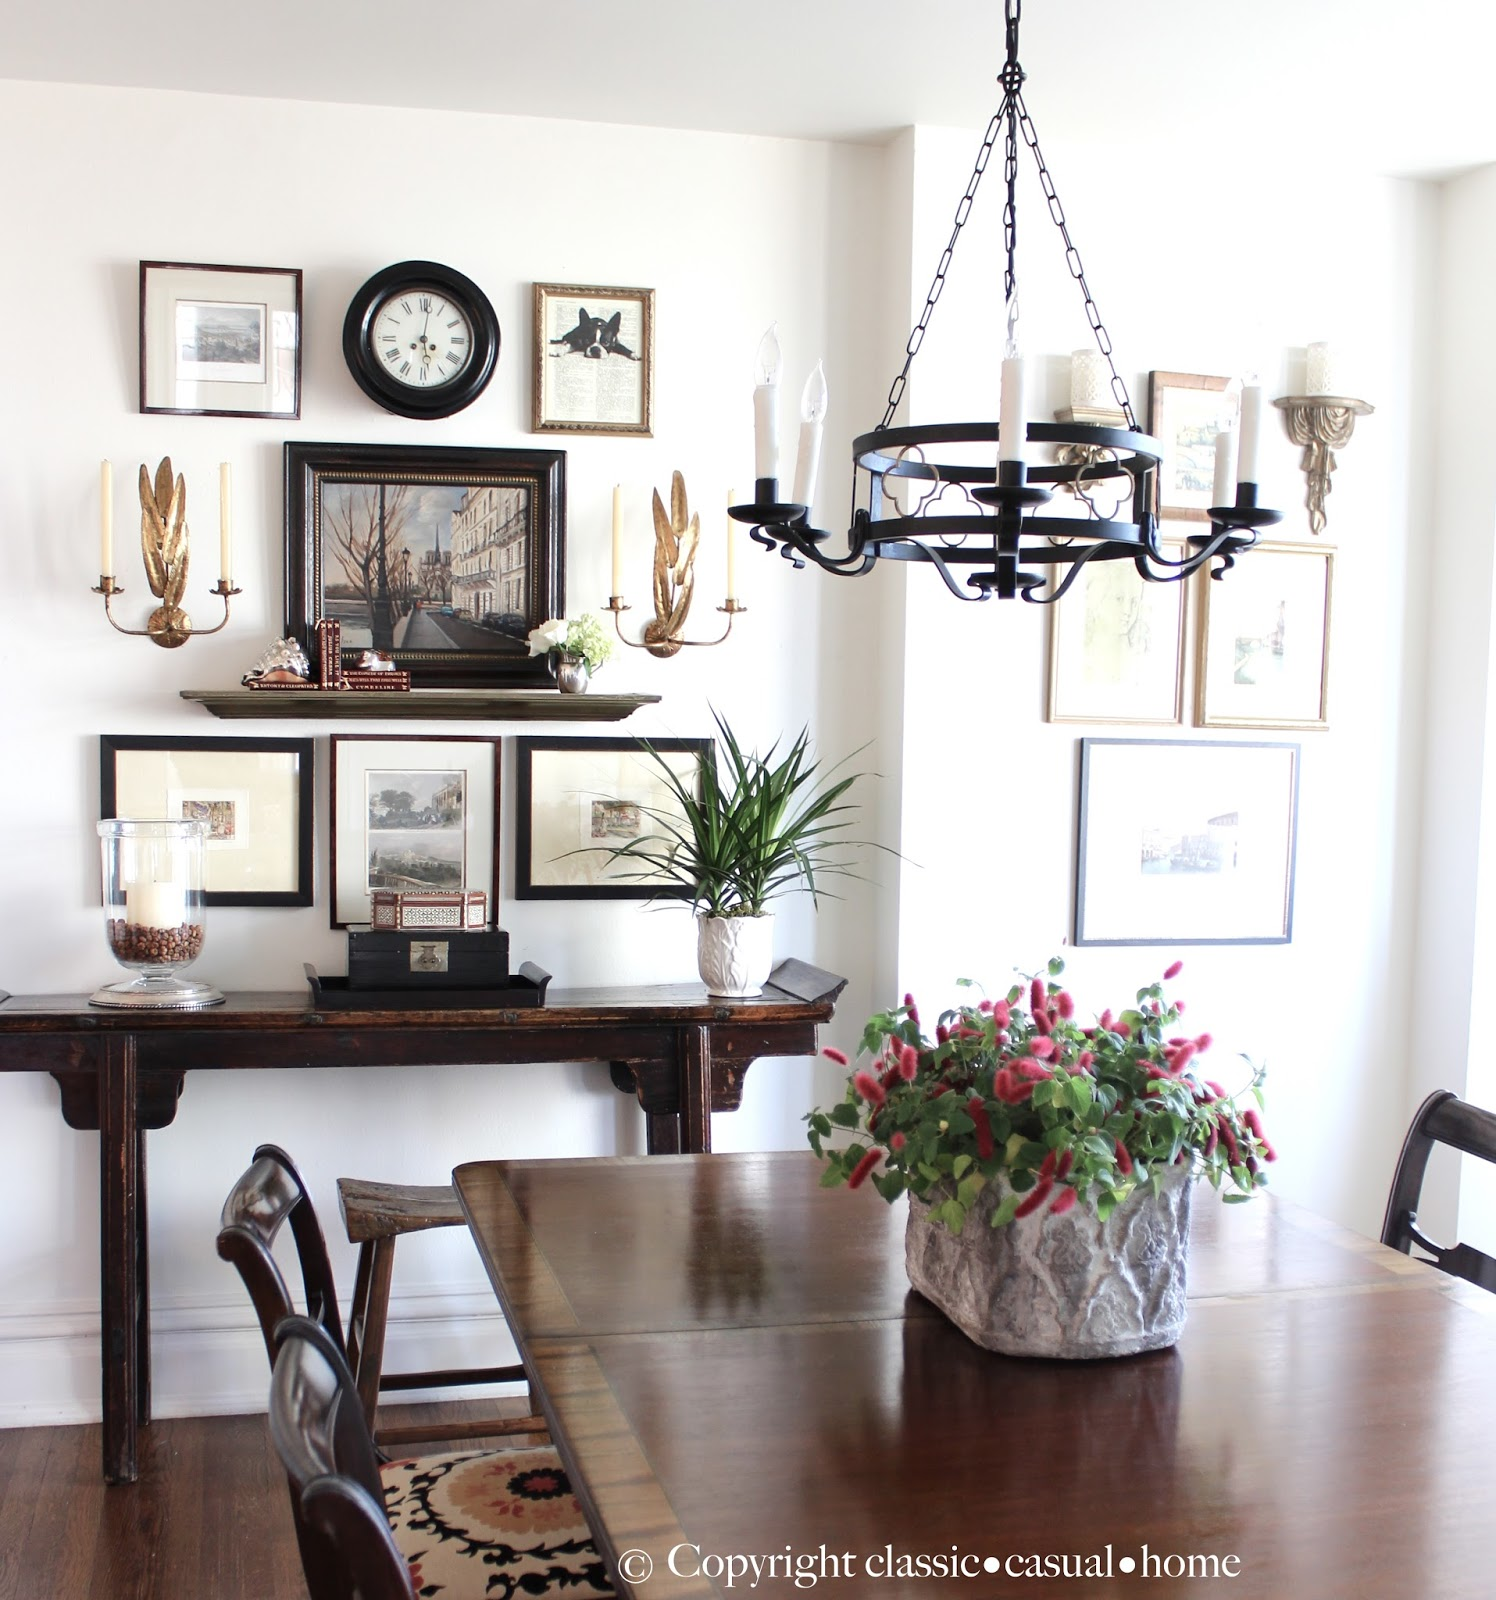 Casual Dining Room Decor Ideas: Classic • Casual • Home: Project Design: Vintage Gallery